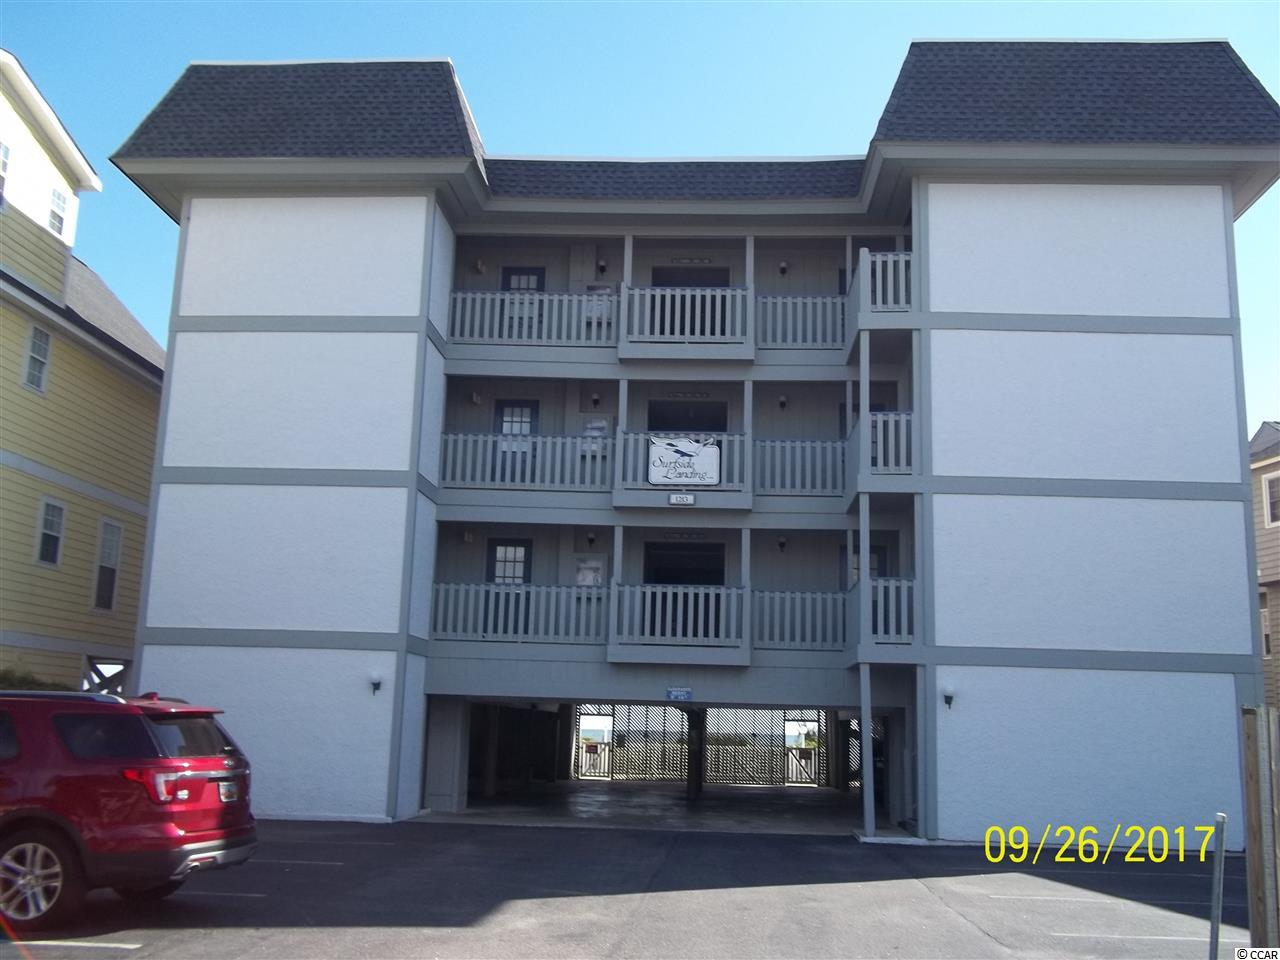 Condo / Townhome / Villa for Sale at 1213 S Ocean Blvd 1213 S Ocean Blvd Surfside Beach, South Carolina 29575 United States